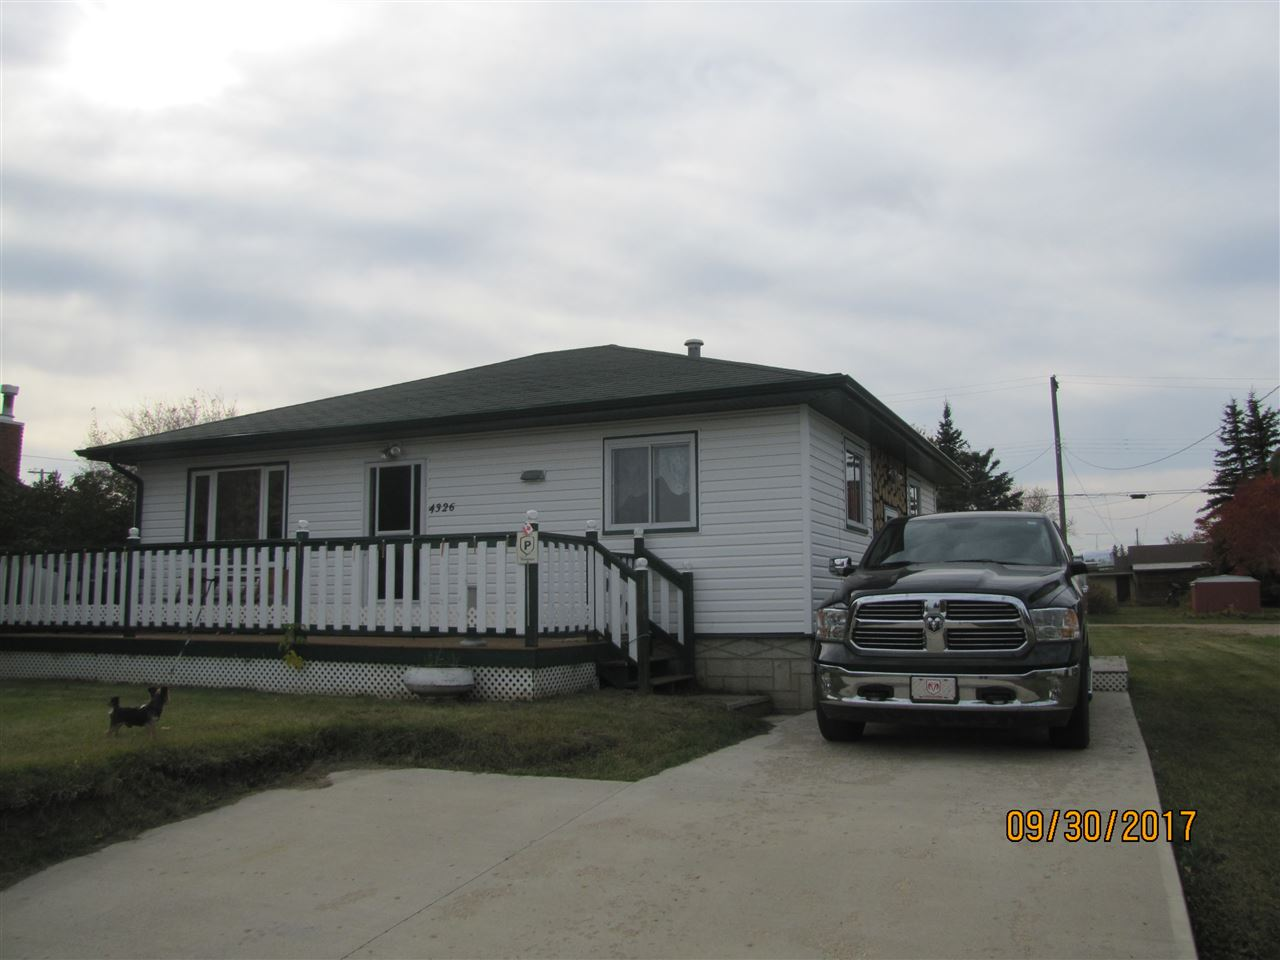 Beauiful 2+1 bedroom bungalow located on a quiet street in the town of Smoky Lake. This fully upgraded home has new kitchen cabinets, counter tops, flooring, paint, bathroom, & finishing throughout the home. The basement has 1 bedroom, and is partially finished with a 2nd bathroom. The mechanical furnace and hot water tank are newer. The exterior of the home is low maintenance vinyl siding The home is on a full sized lot, & is fully landscaped.  All of the appliances are included in the sale of this home. This home shows a 10 out of 10